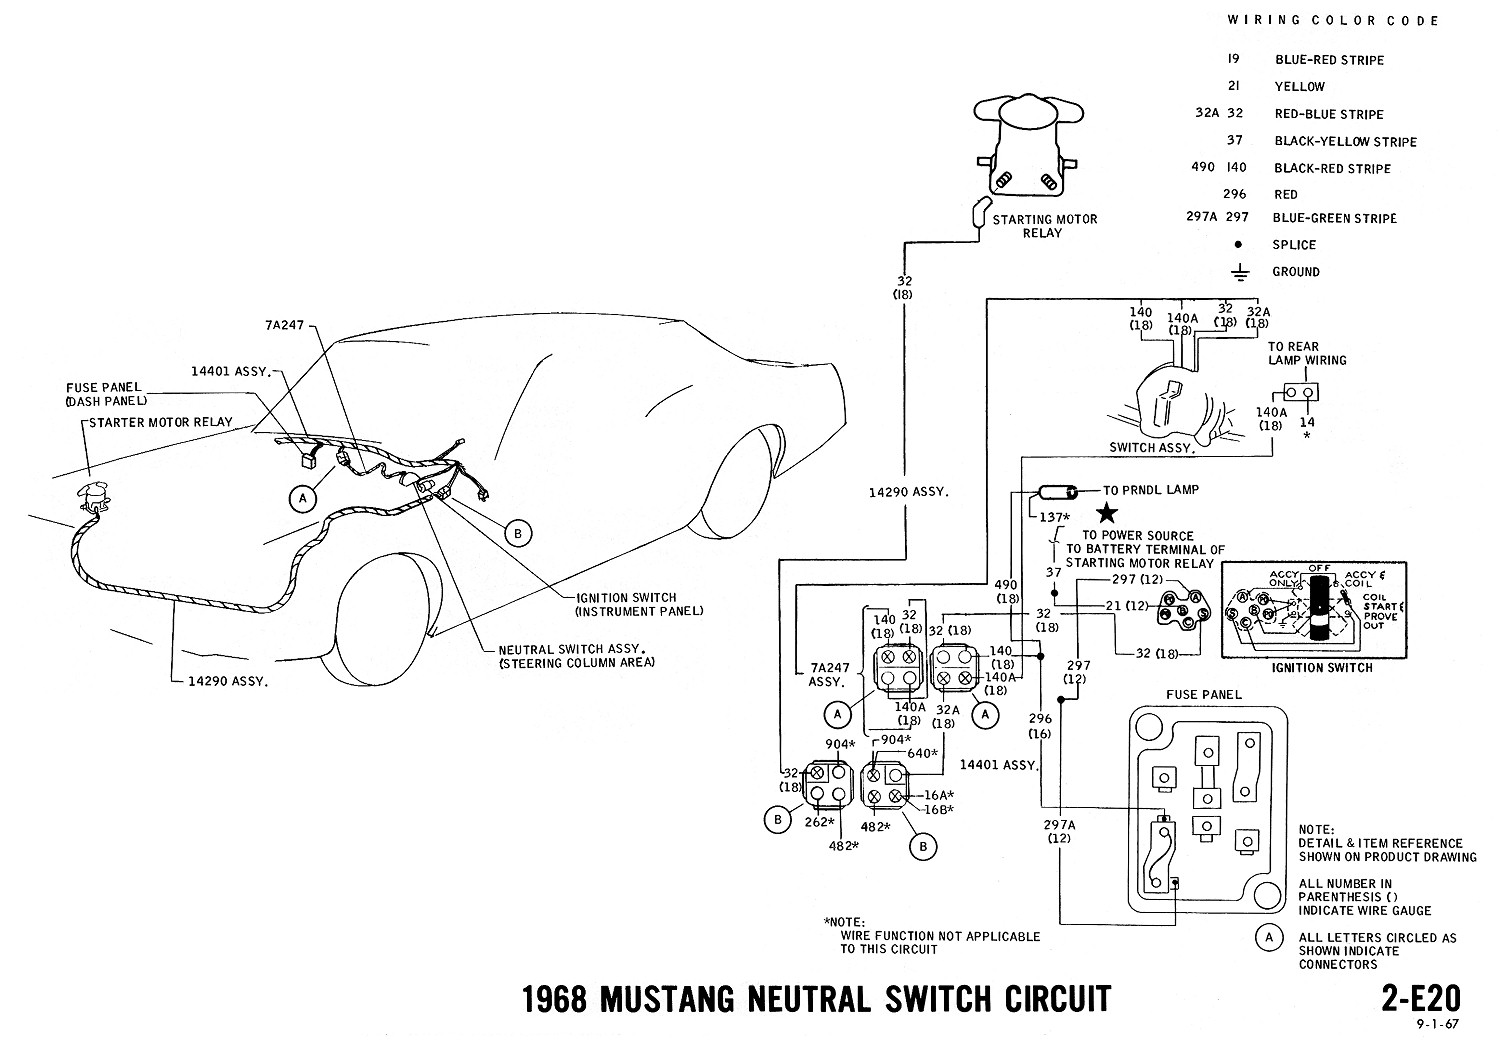 1968 mustang wiring diagrams evolving software rh peterfranza com 67 mustang under dash wiring diagram 1967 mustang under dash wiring diagram